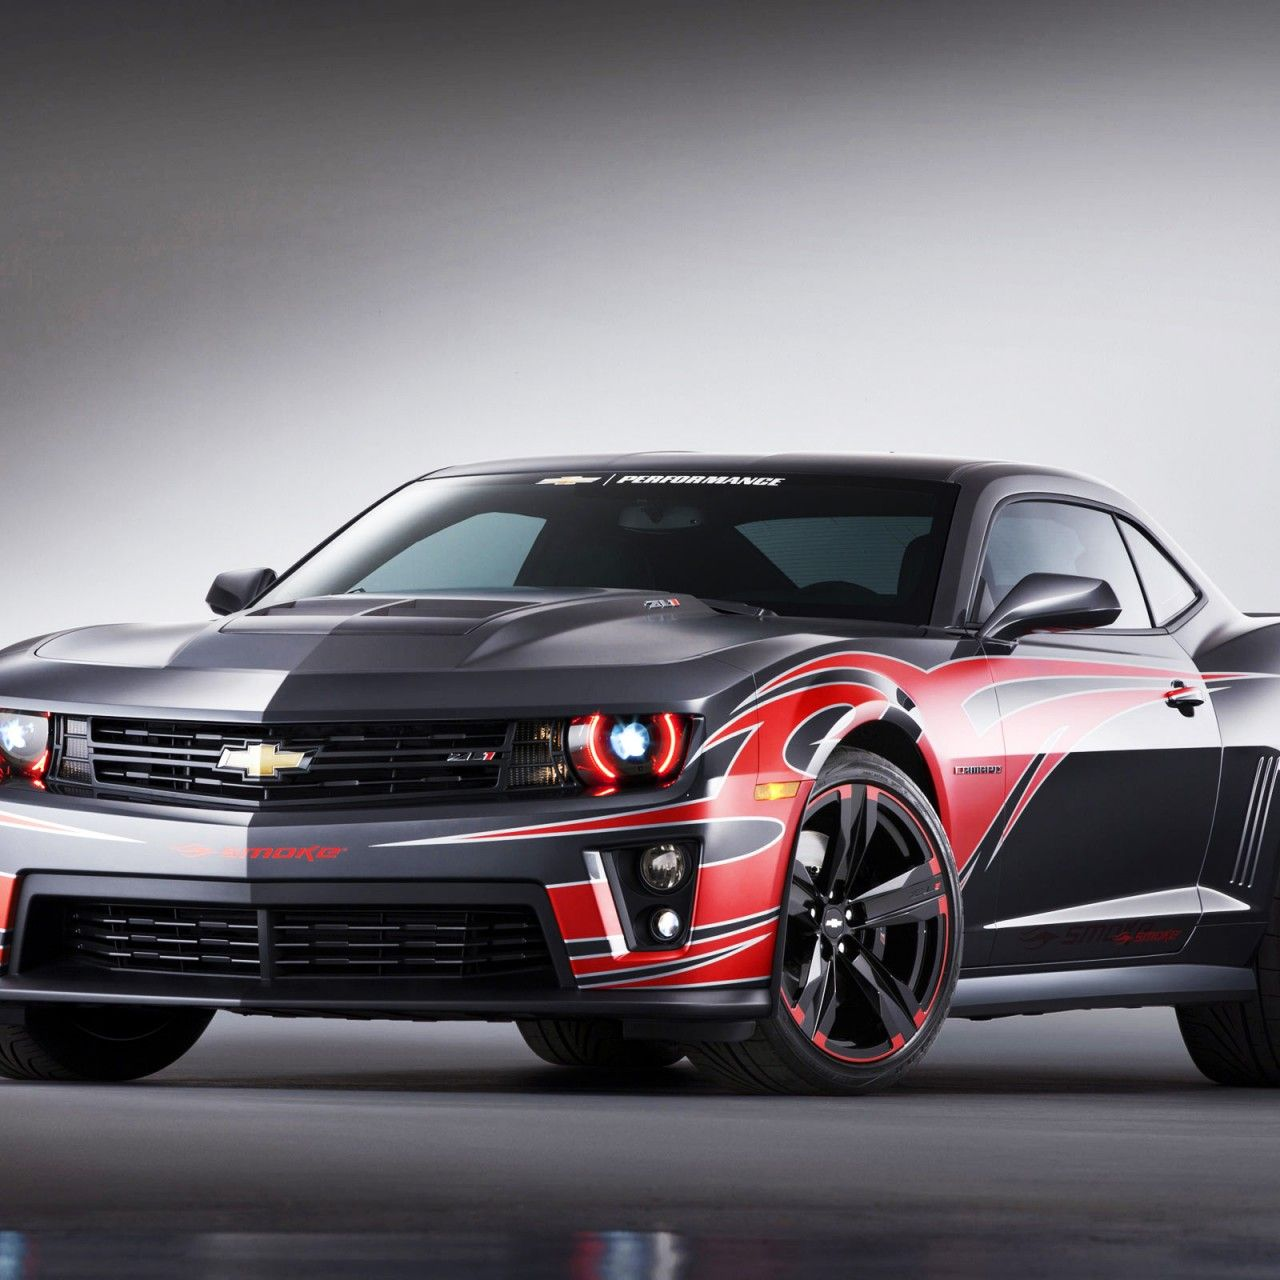 List Of Chevy Cars Wallpaper | Awesome Cars, Trucks and Vans ...